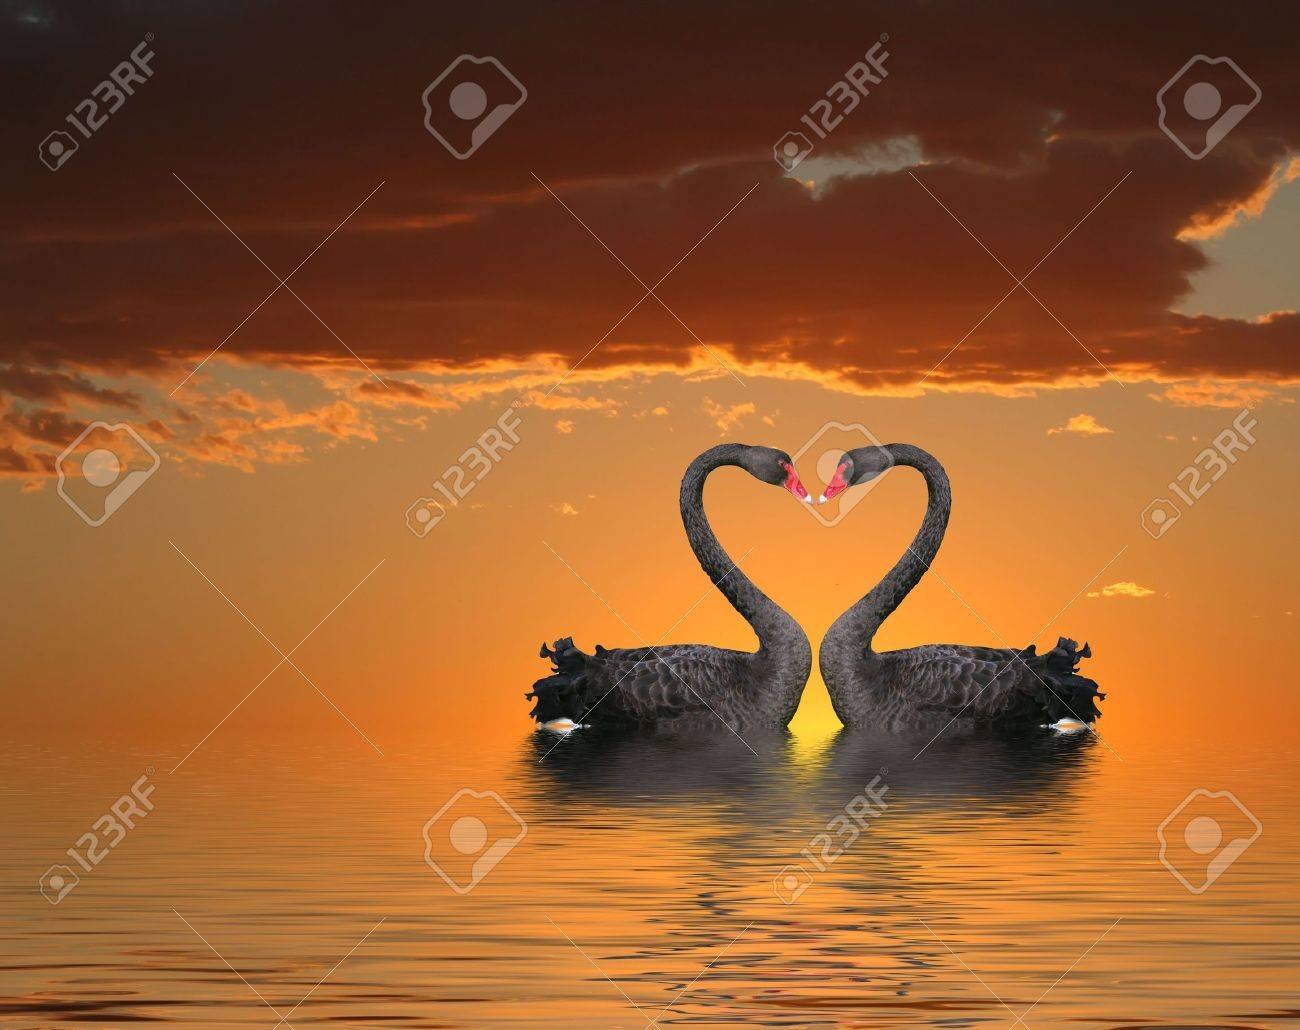 Two romantic swans at sunset with water reflection Stock Photo - 4741506